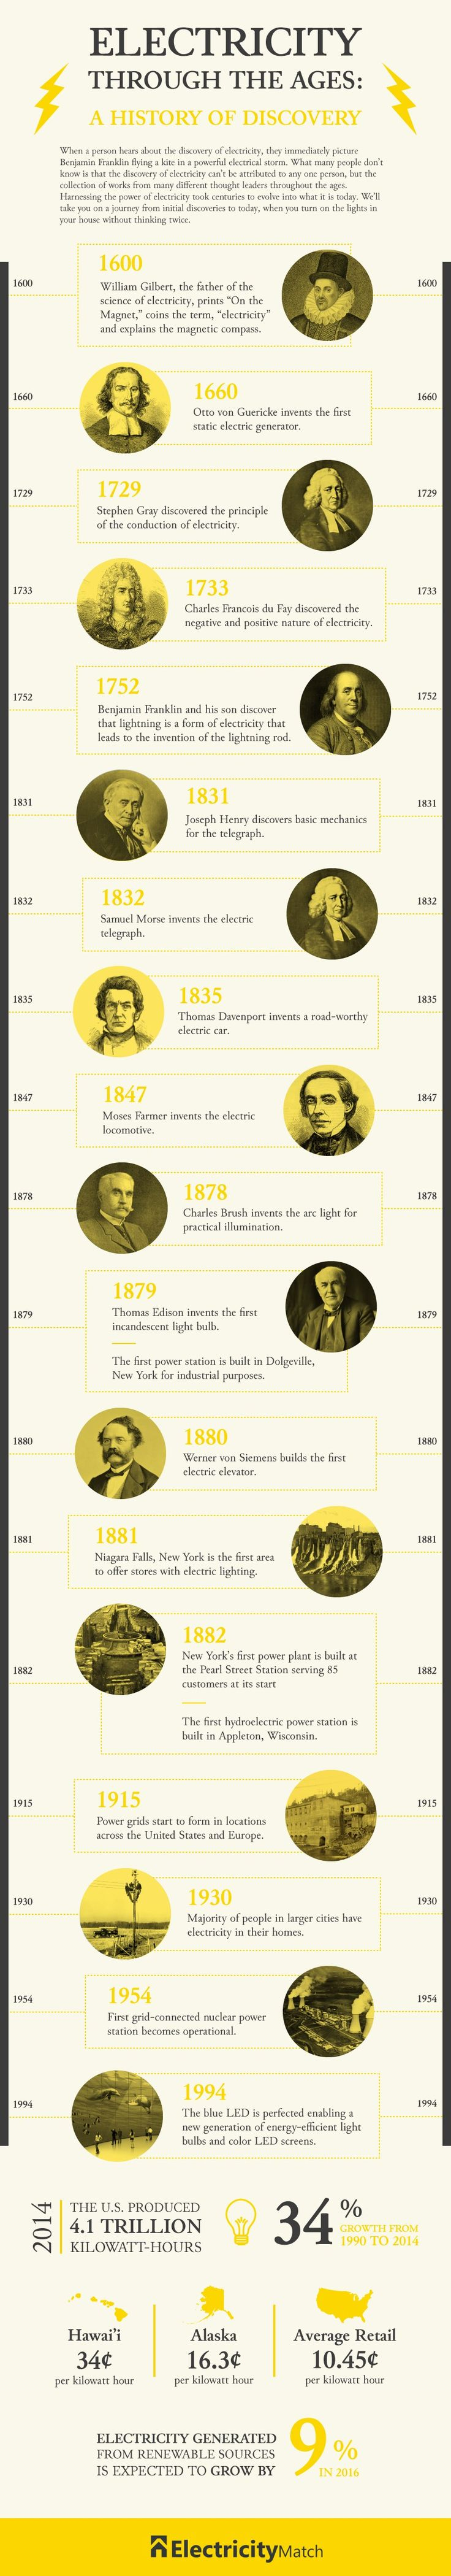 Electricity-Match-Timeline-Graphic (3) http://electricitymatch.com/blog/residential-electricity/electricity-through-the-ages/